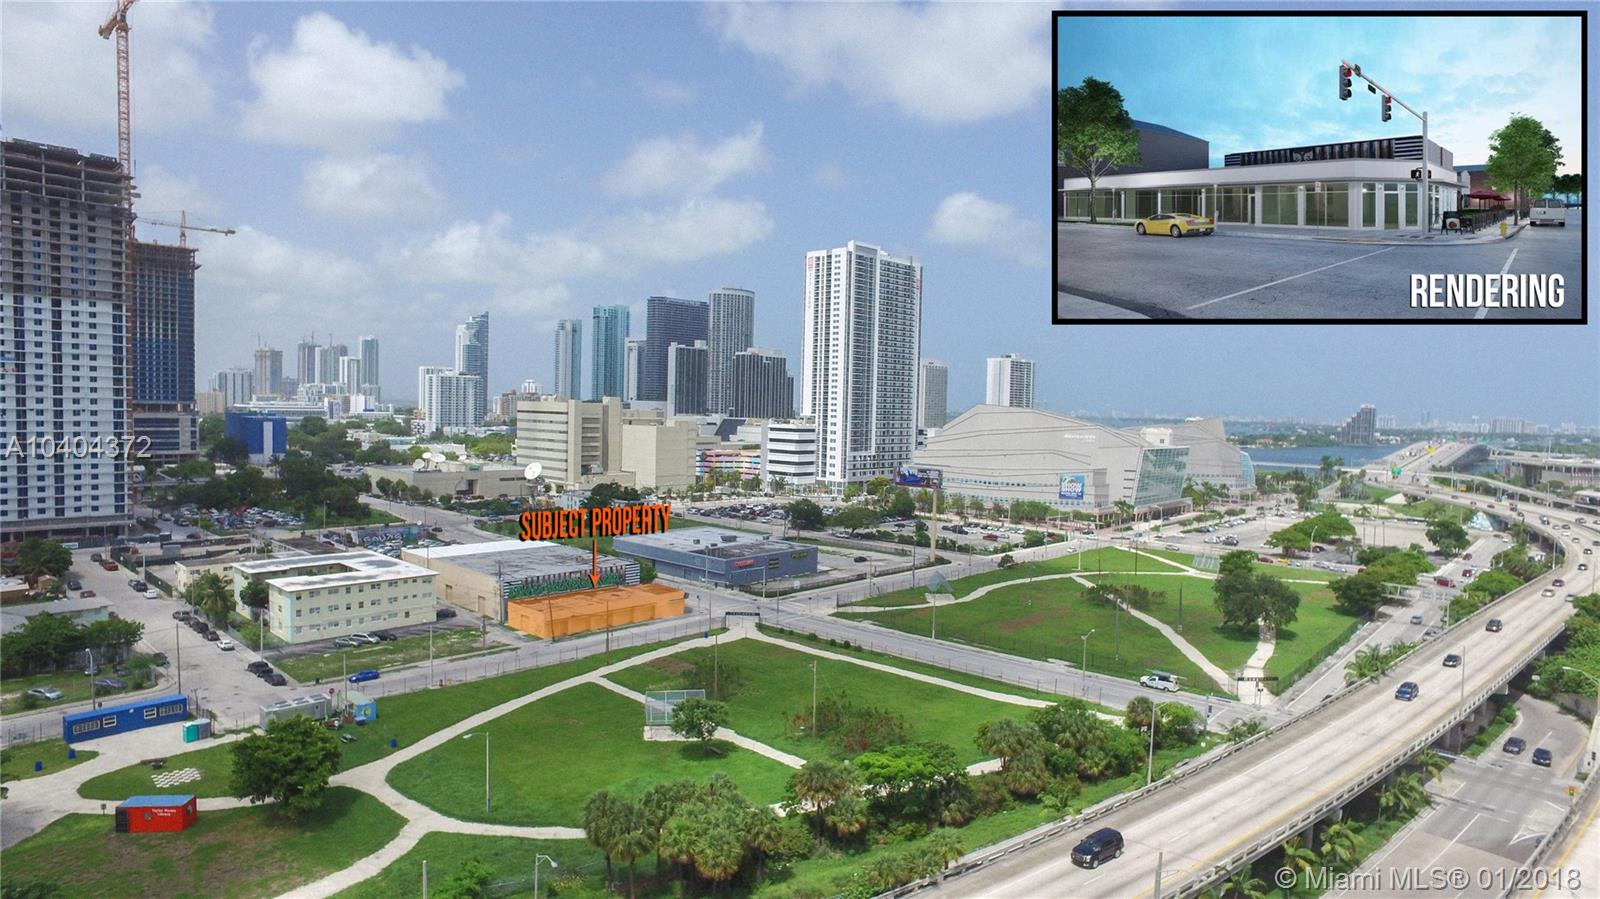 1304 NE 1st Ave  For Sale A10404372, FL